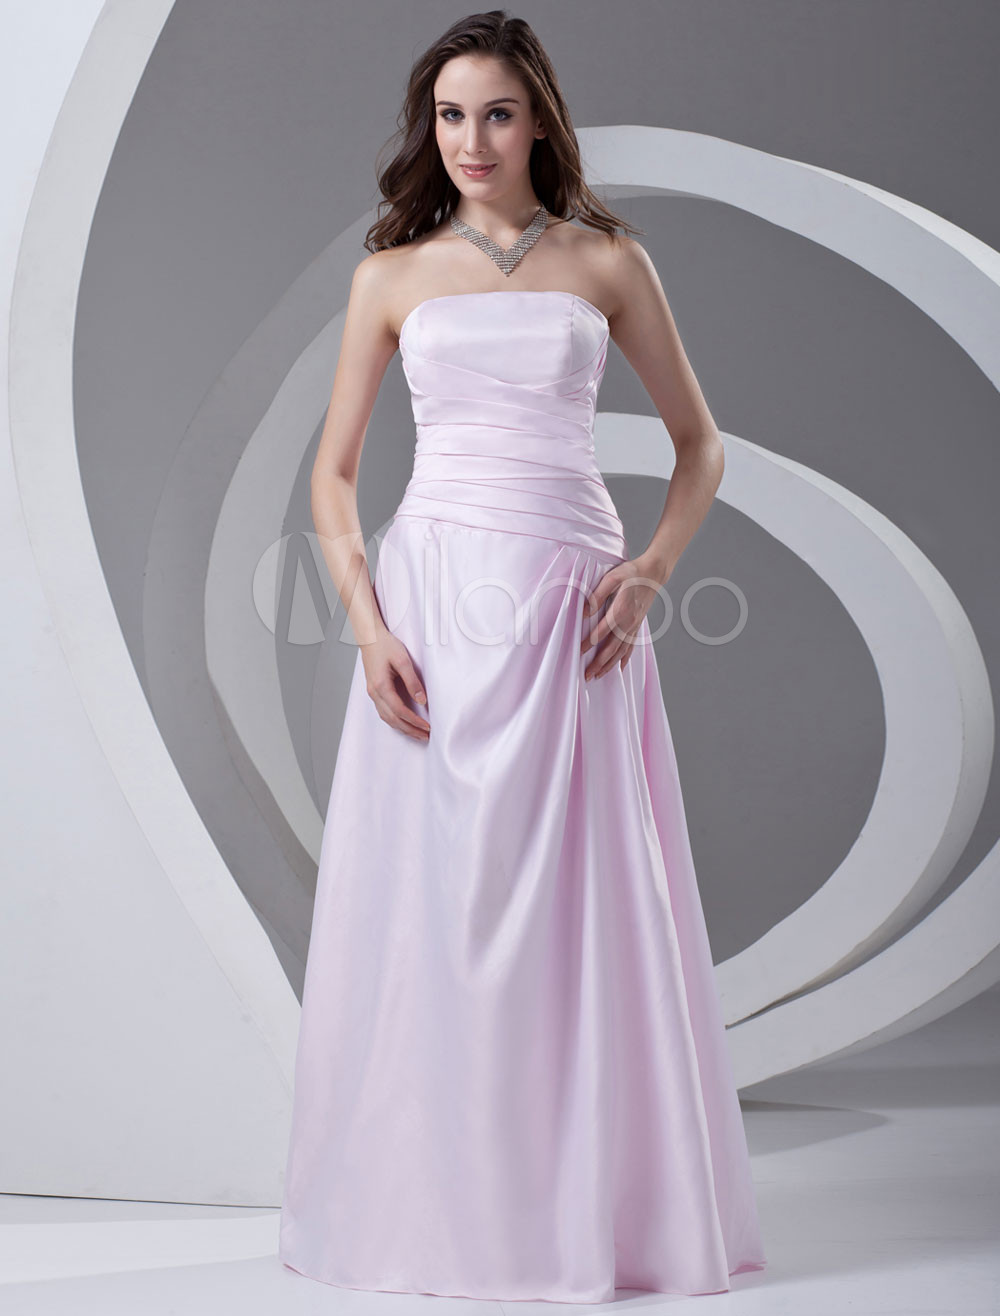 Strapless Floor-Length Pink A-line Ruched Satin Bridesmaid Dress